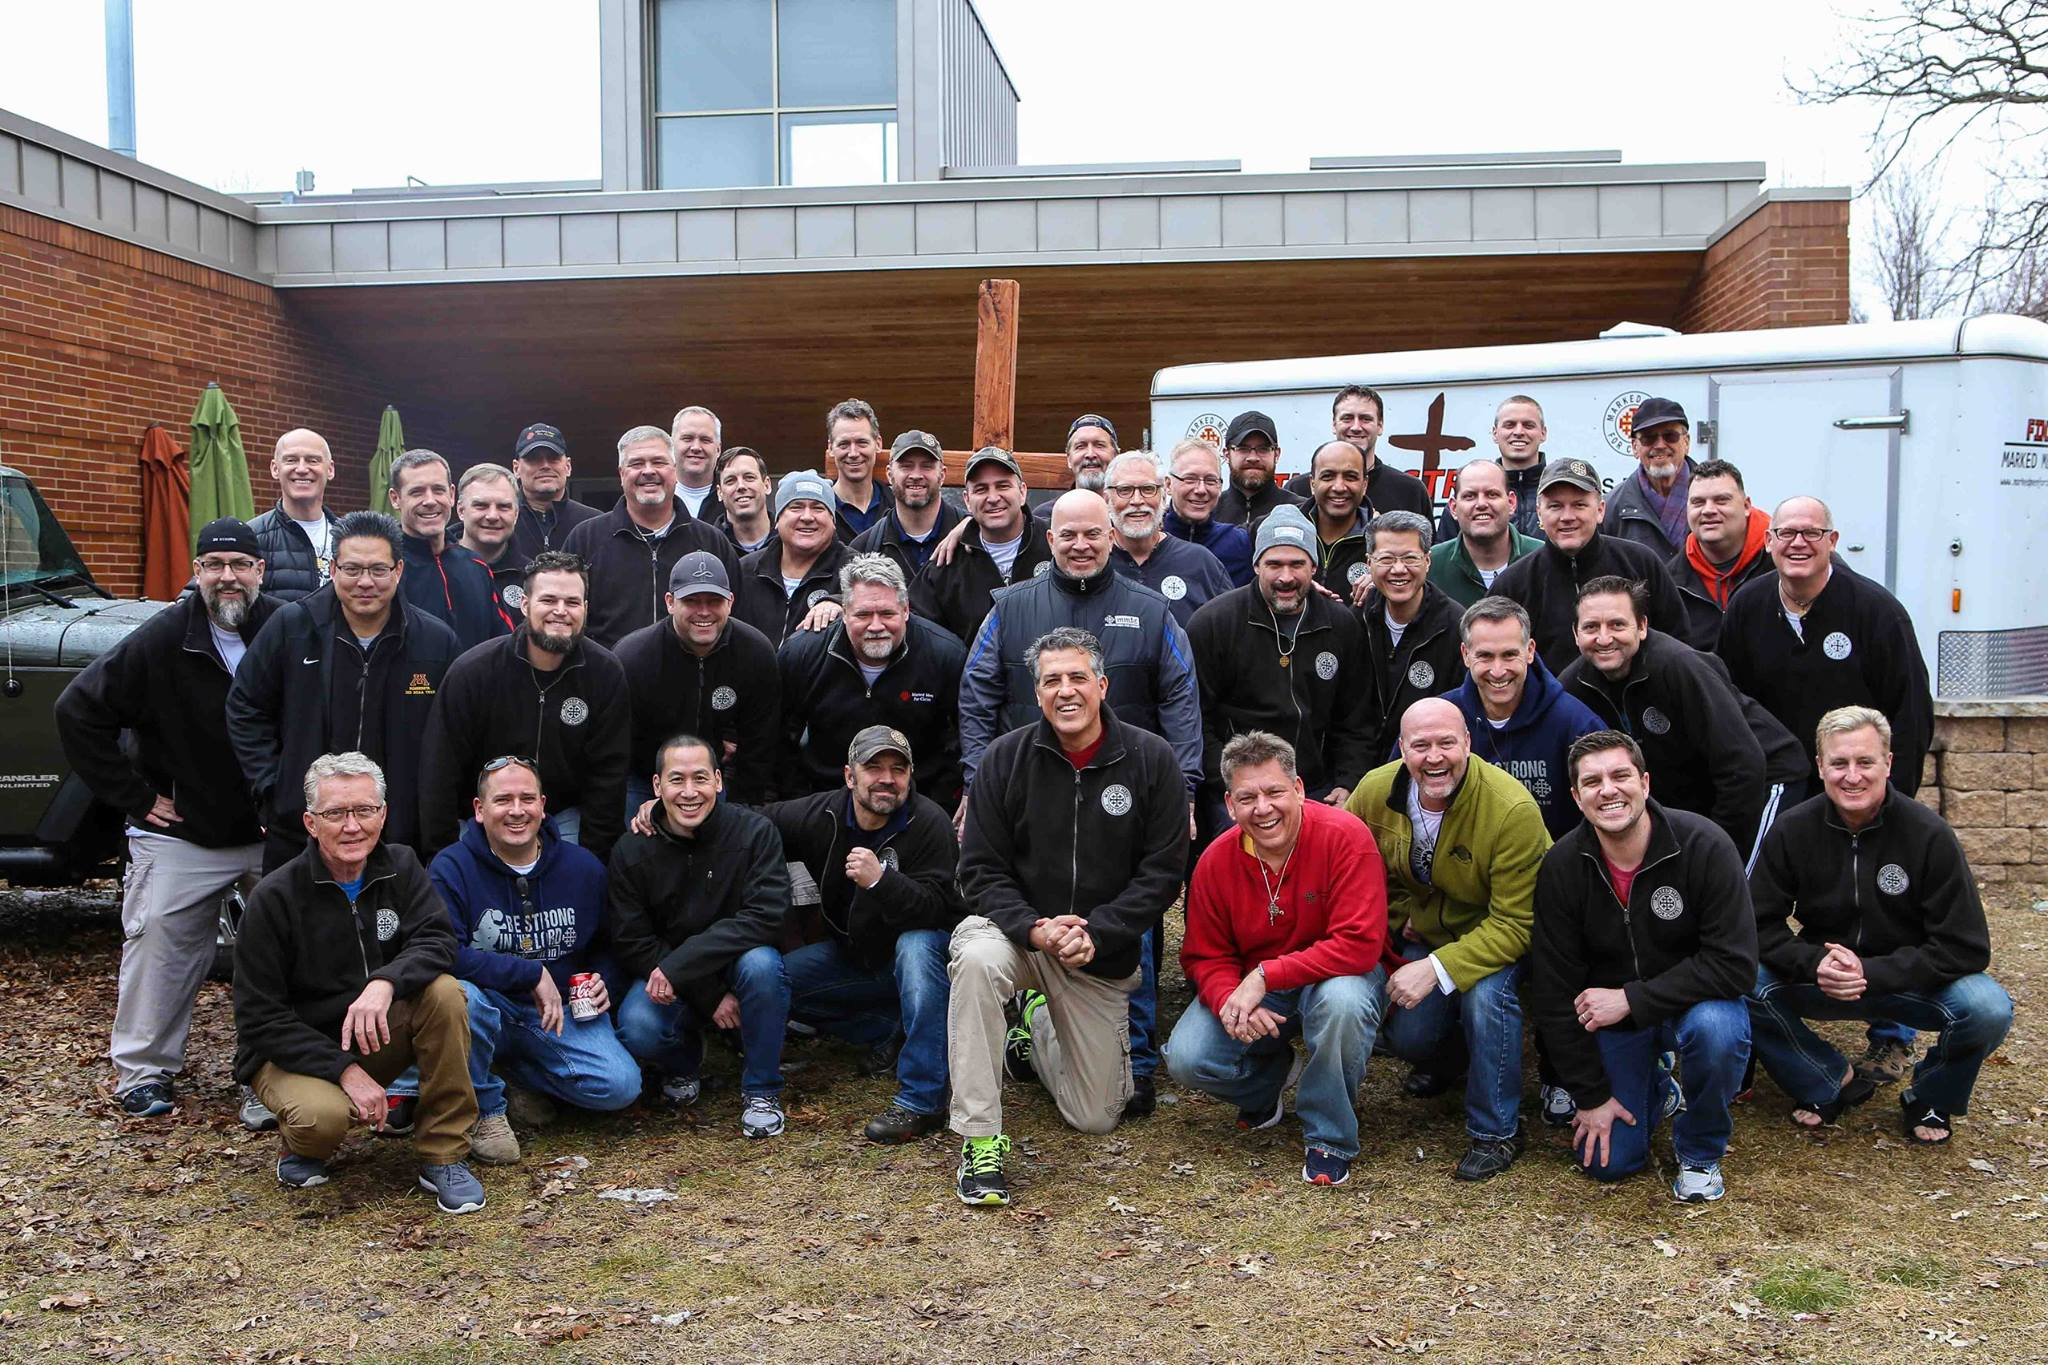 Staff for Marked Men for Christ Phase 1 weekend #209 Minnesota February 2016